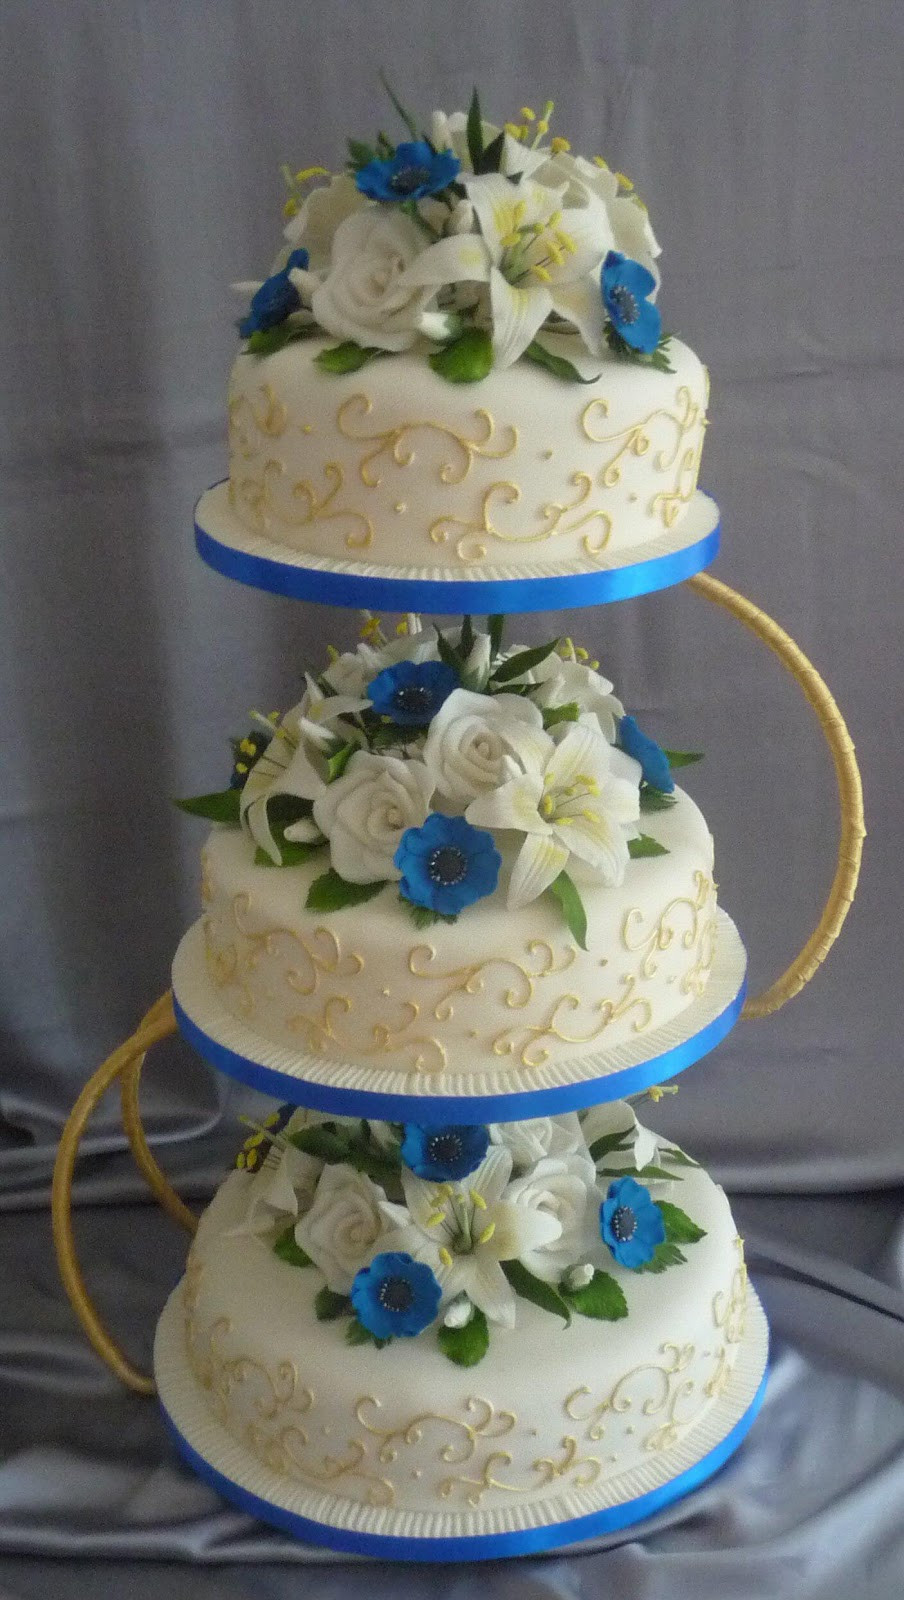 Blue And Gold Wedding Cakes  wedding cakes by franziska blue and gold wedding cake design